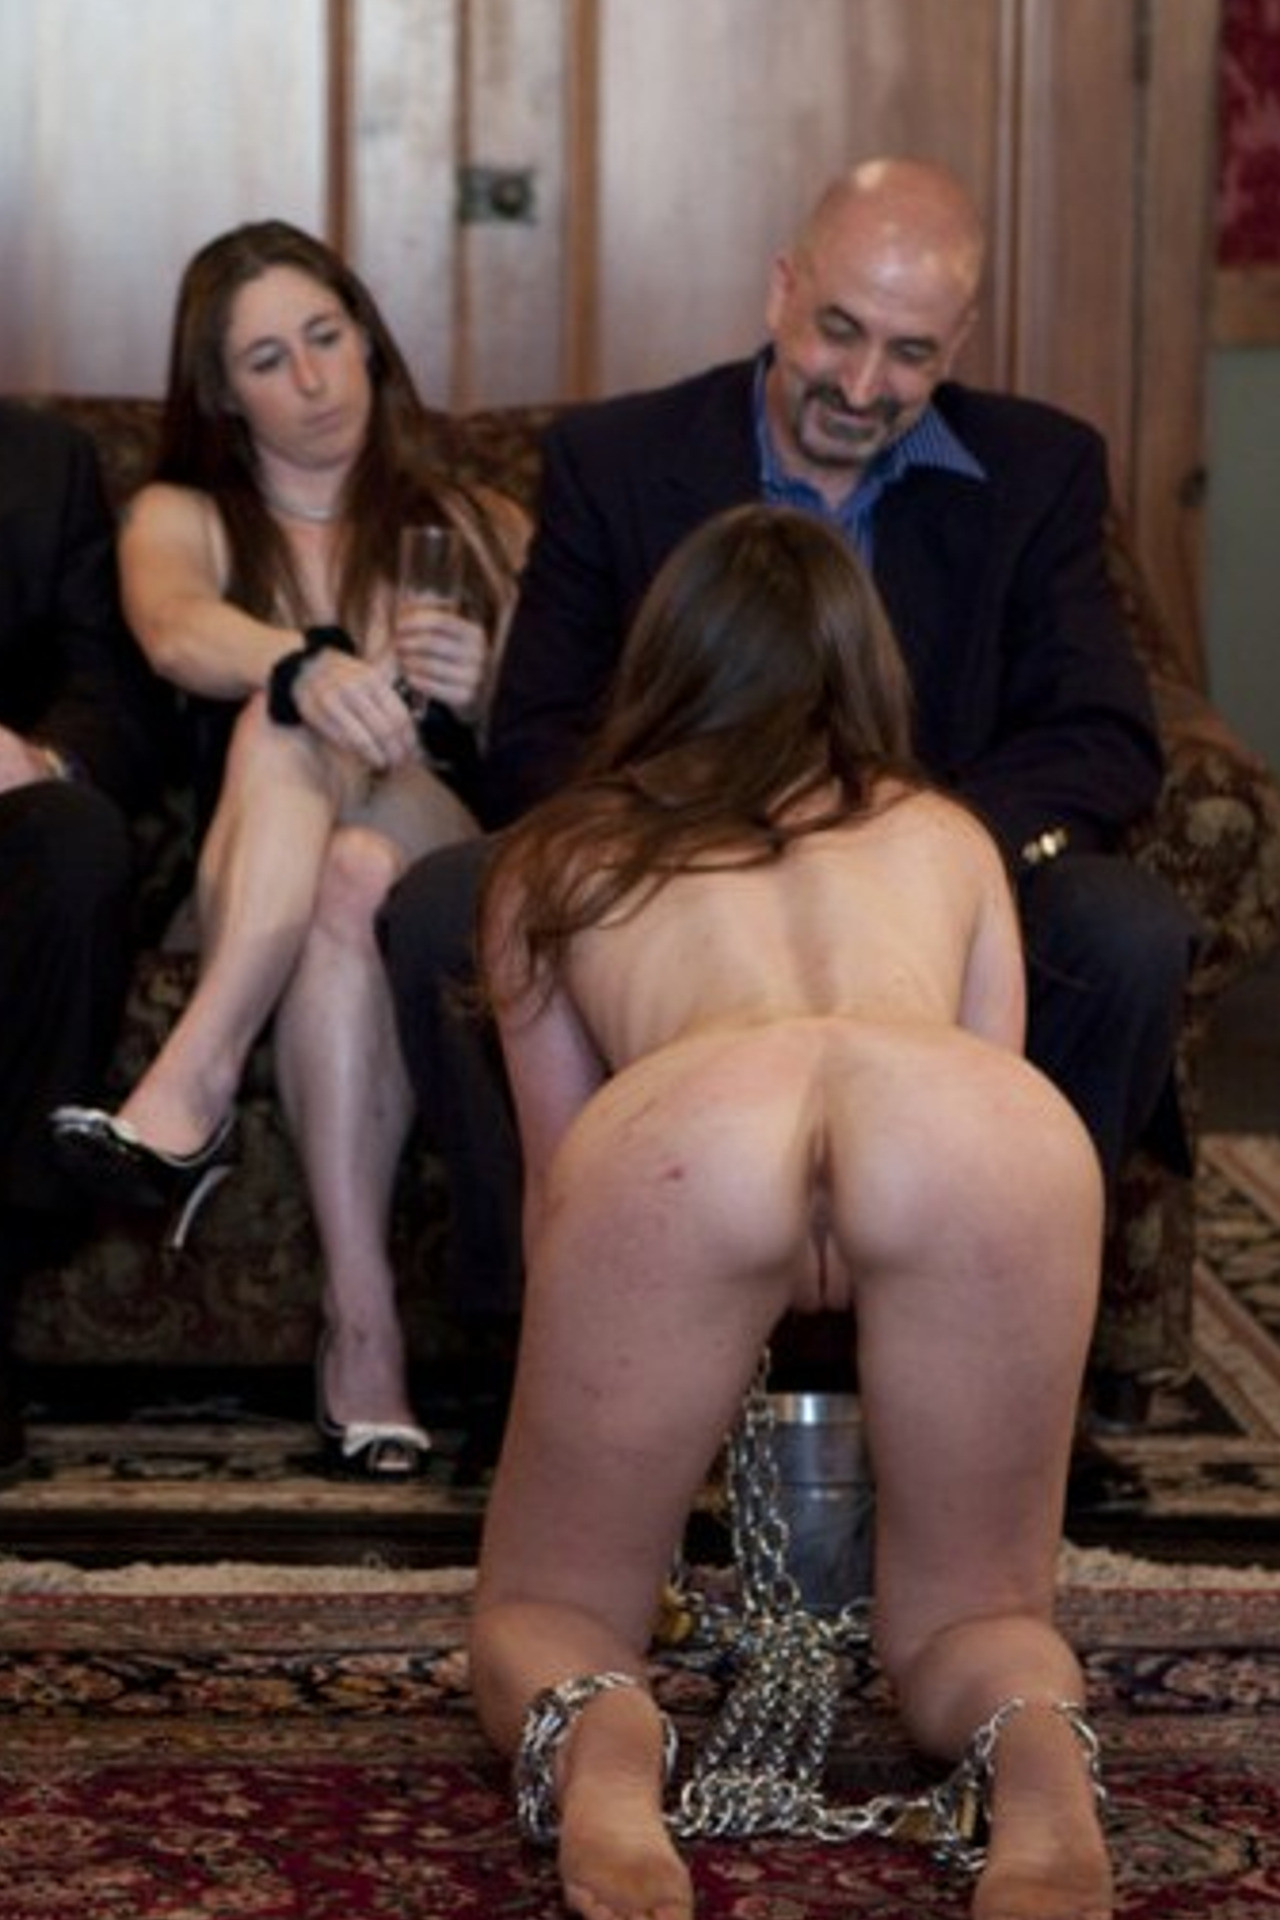 Slave auction porn image gallery erotic picture